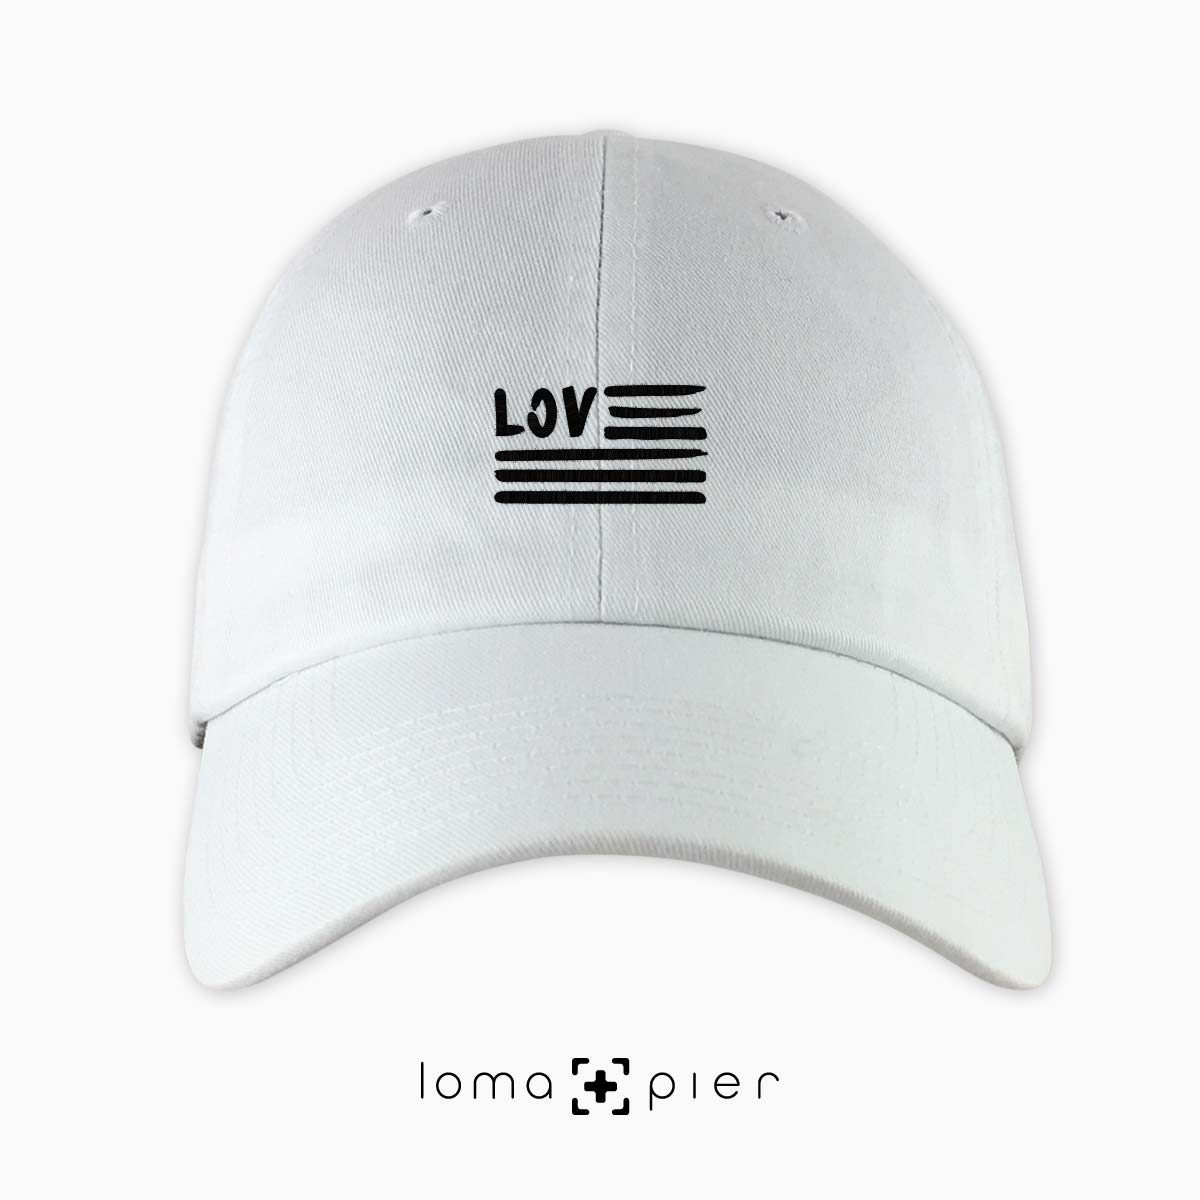 AMERICAN LOVE icon embroidered on a white unstructured dad hat with black thread by loma+pier hat store made in the USA